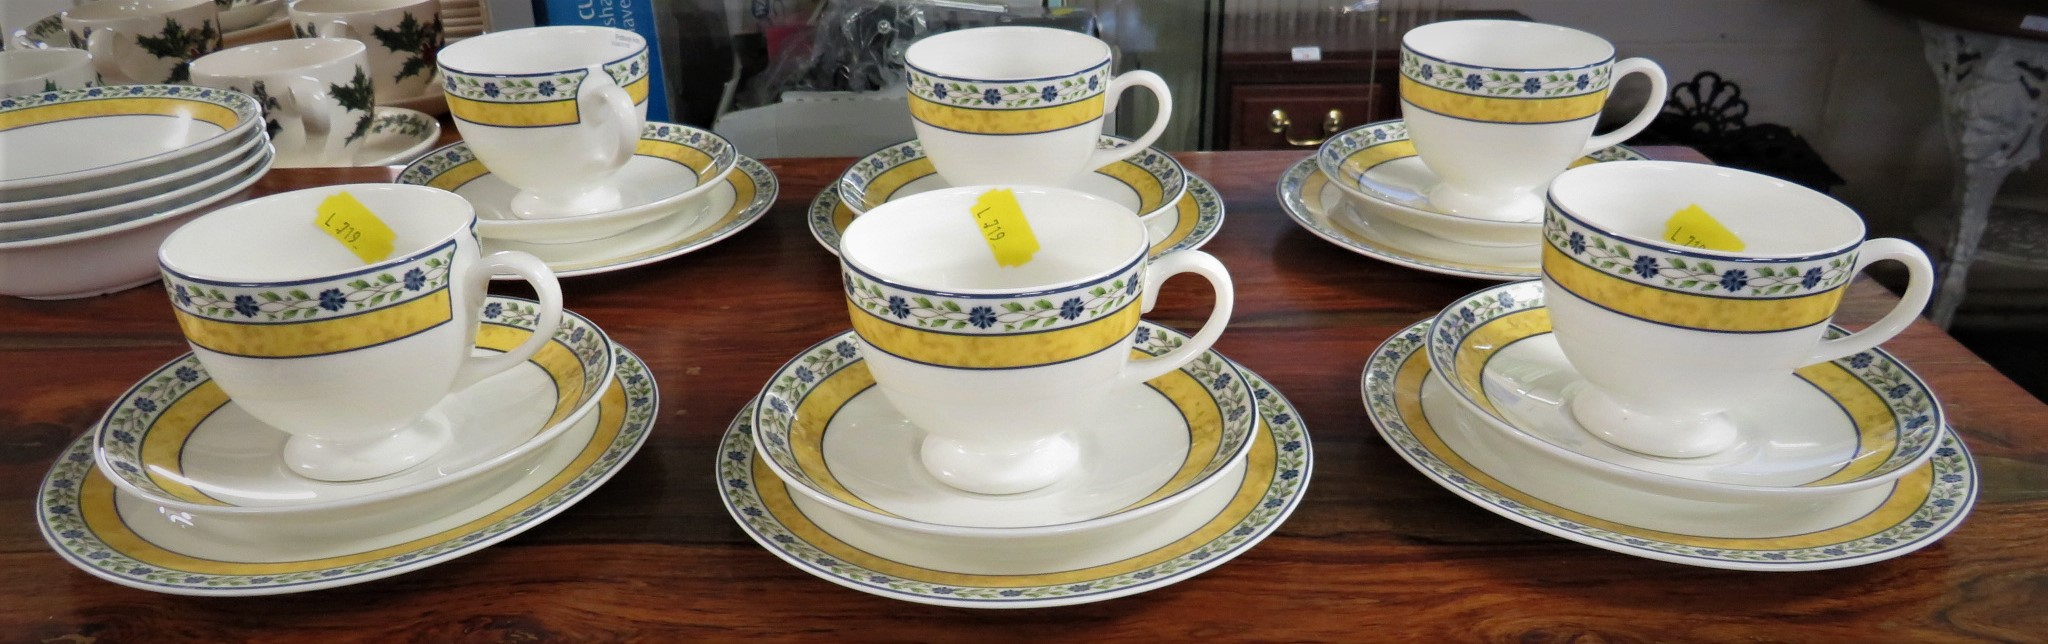 Lot 63 - WEDGWOOD MISTRAL TEA SET - SIX CUPS AND SAUCERS, SIX PLATES, FOUR BOWLS AND A MILK JUG